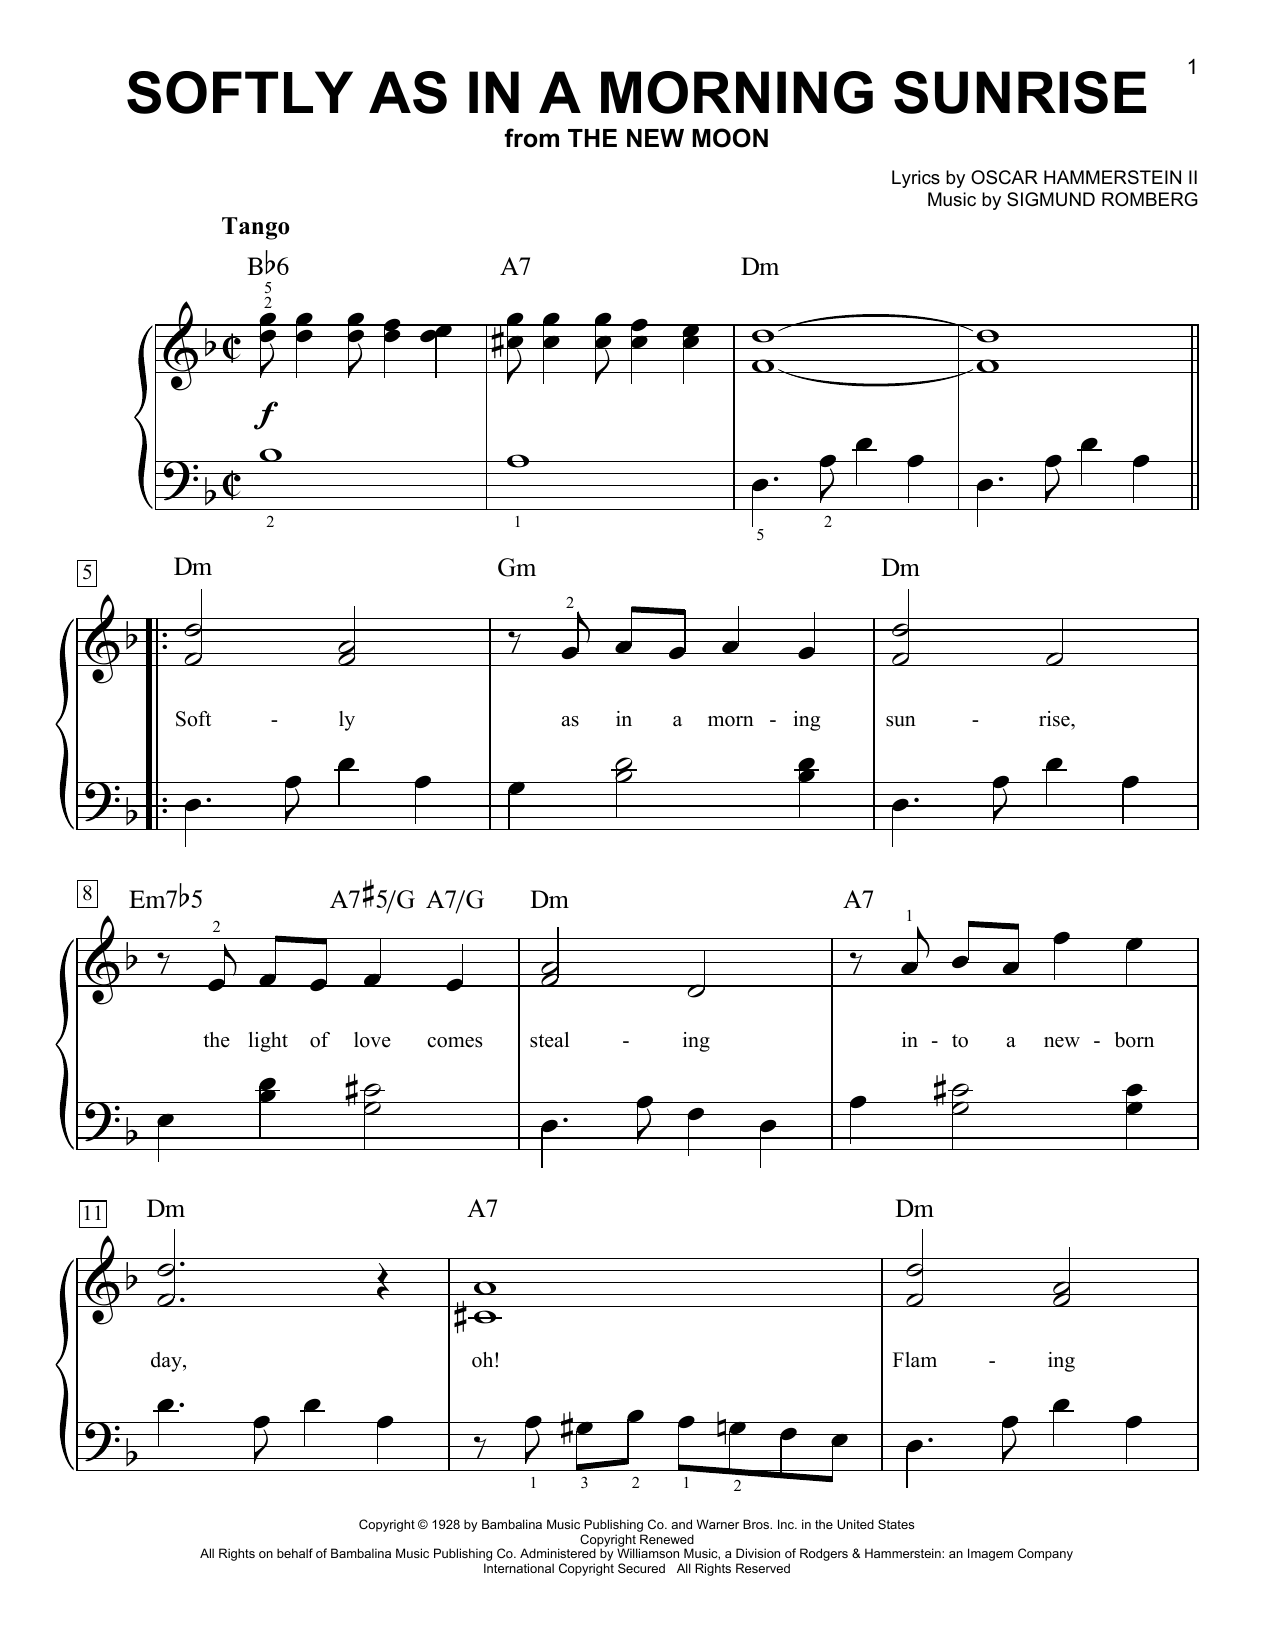 Sigmund Romberg Softly As In A Morning Sunrise sheet music notes and chords. Download Printable PDF.